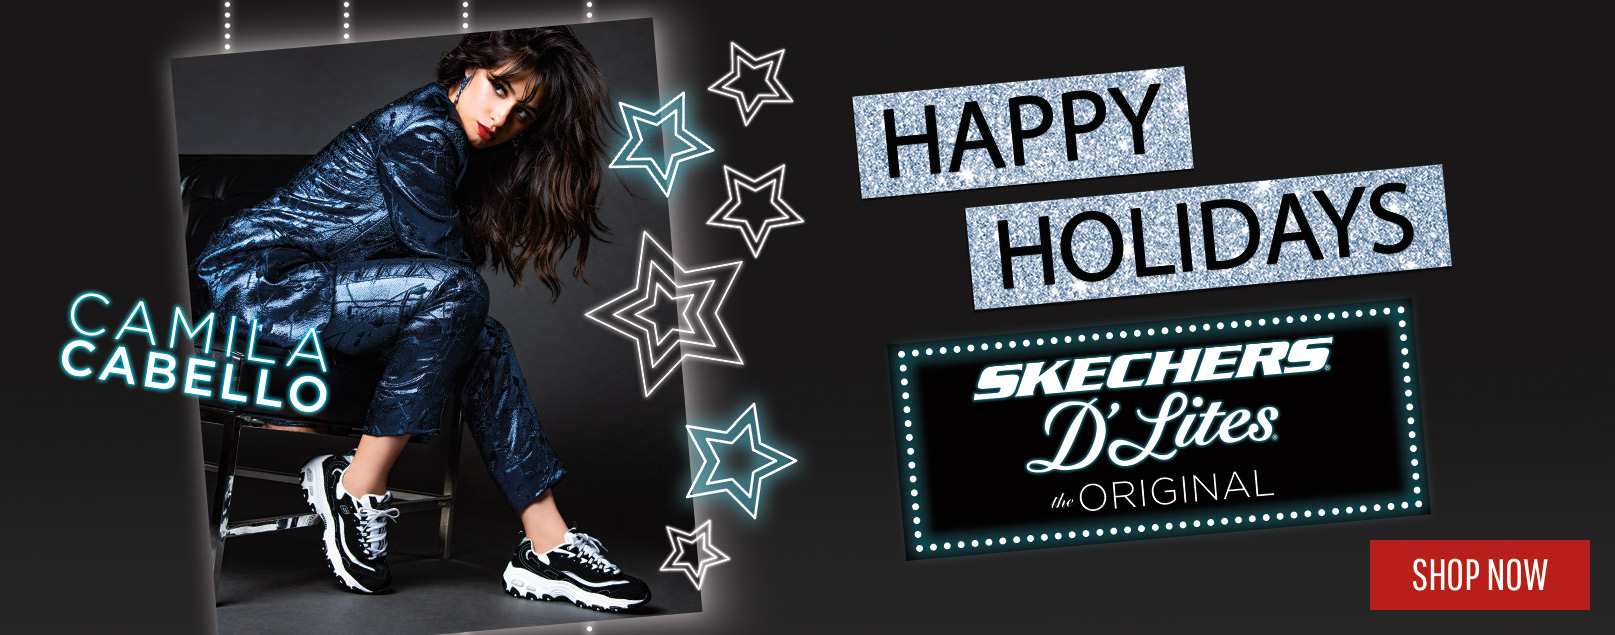 Celebrate your holidays in the year's hottest styles with Skechers D'Lites sneakers.  Find favorite classic looks and cutting-edge new launch looks all with Skechers comfort.